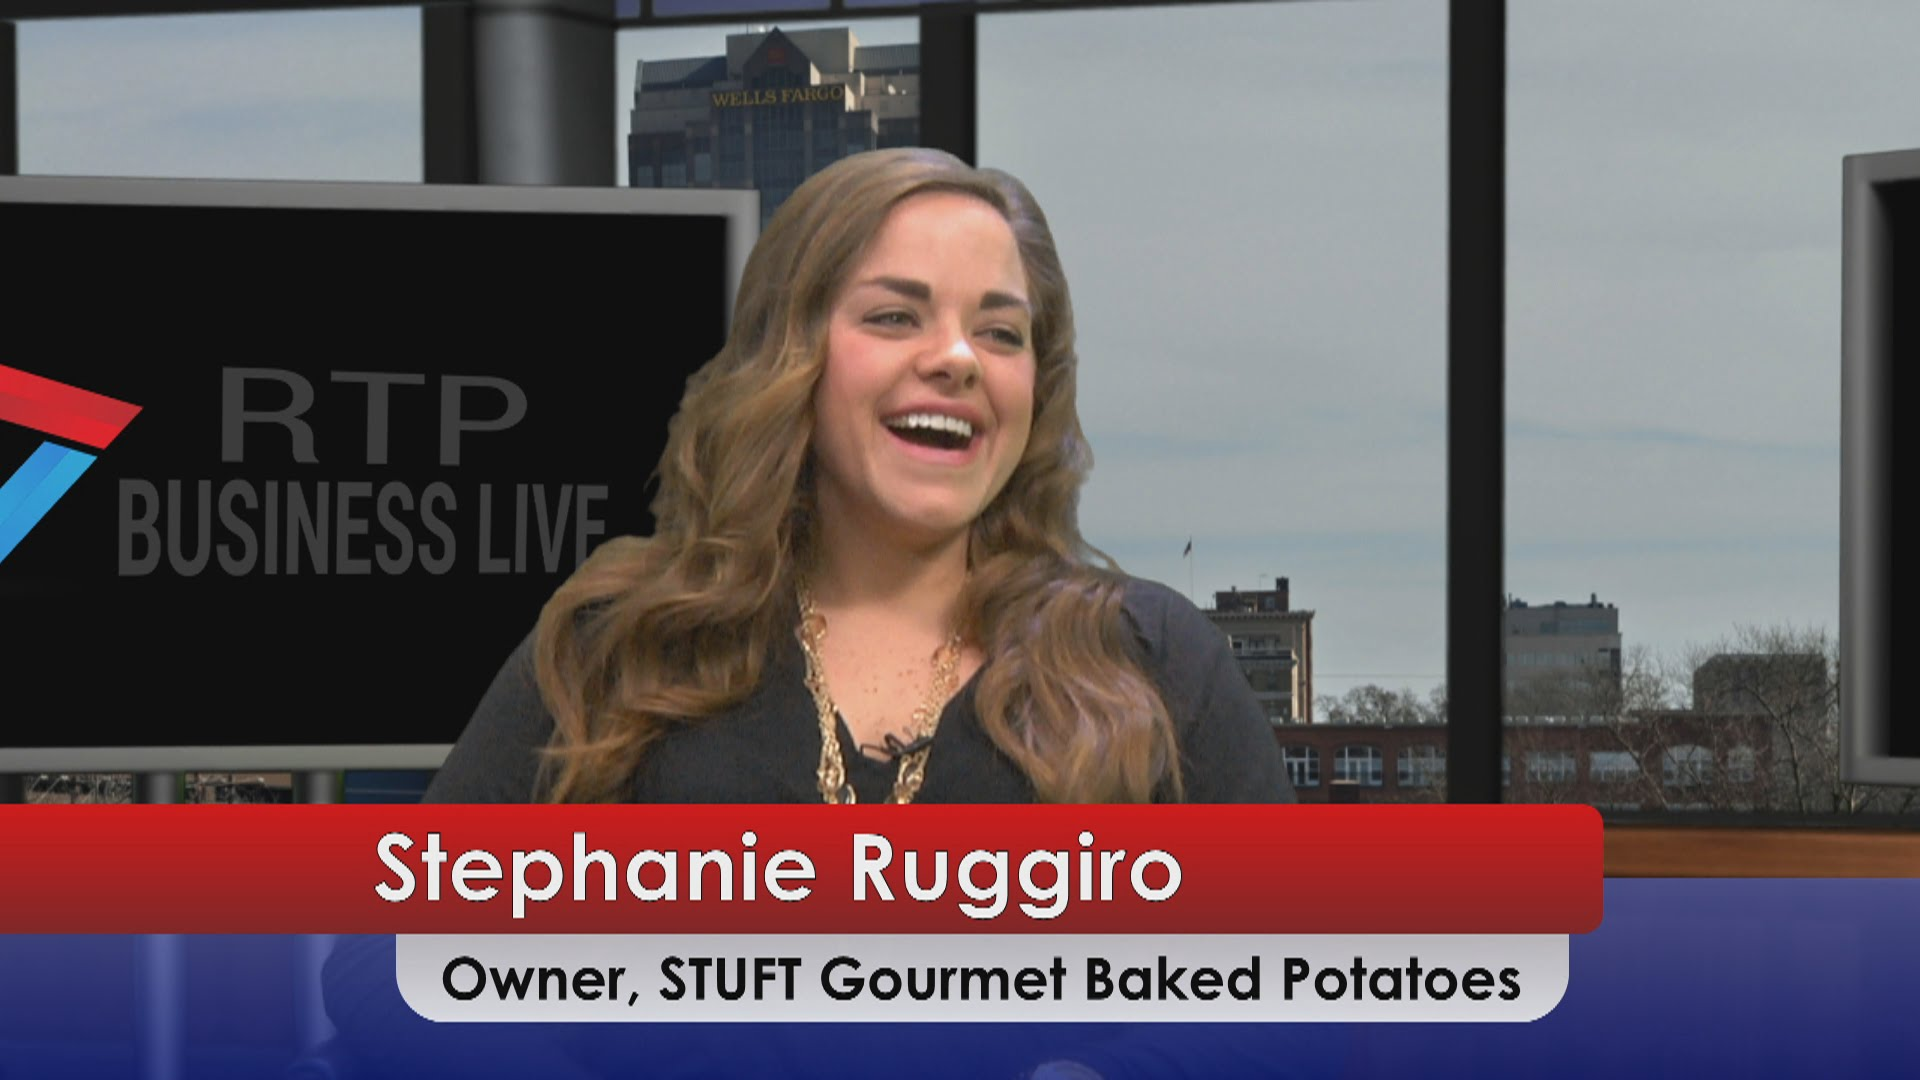 STUFT Gourmet Baked Potatoes – Stephanie Ruggiro